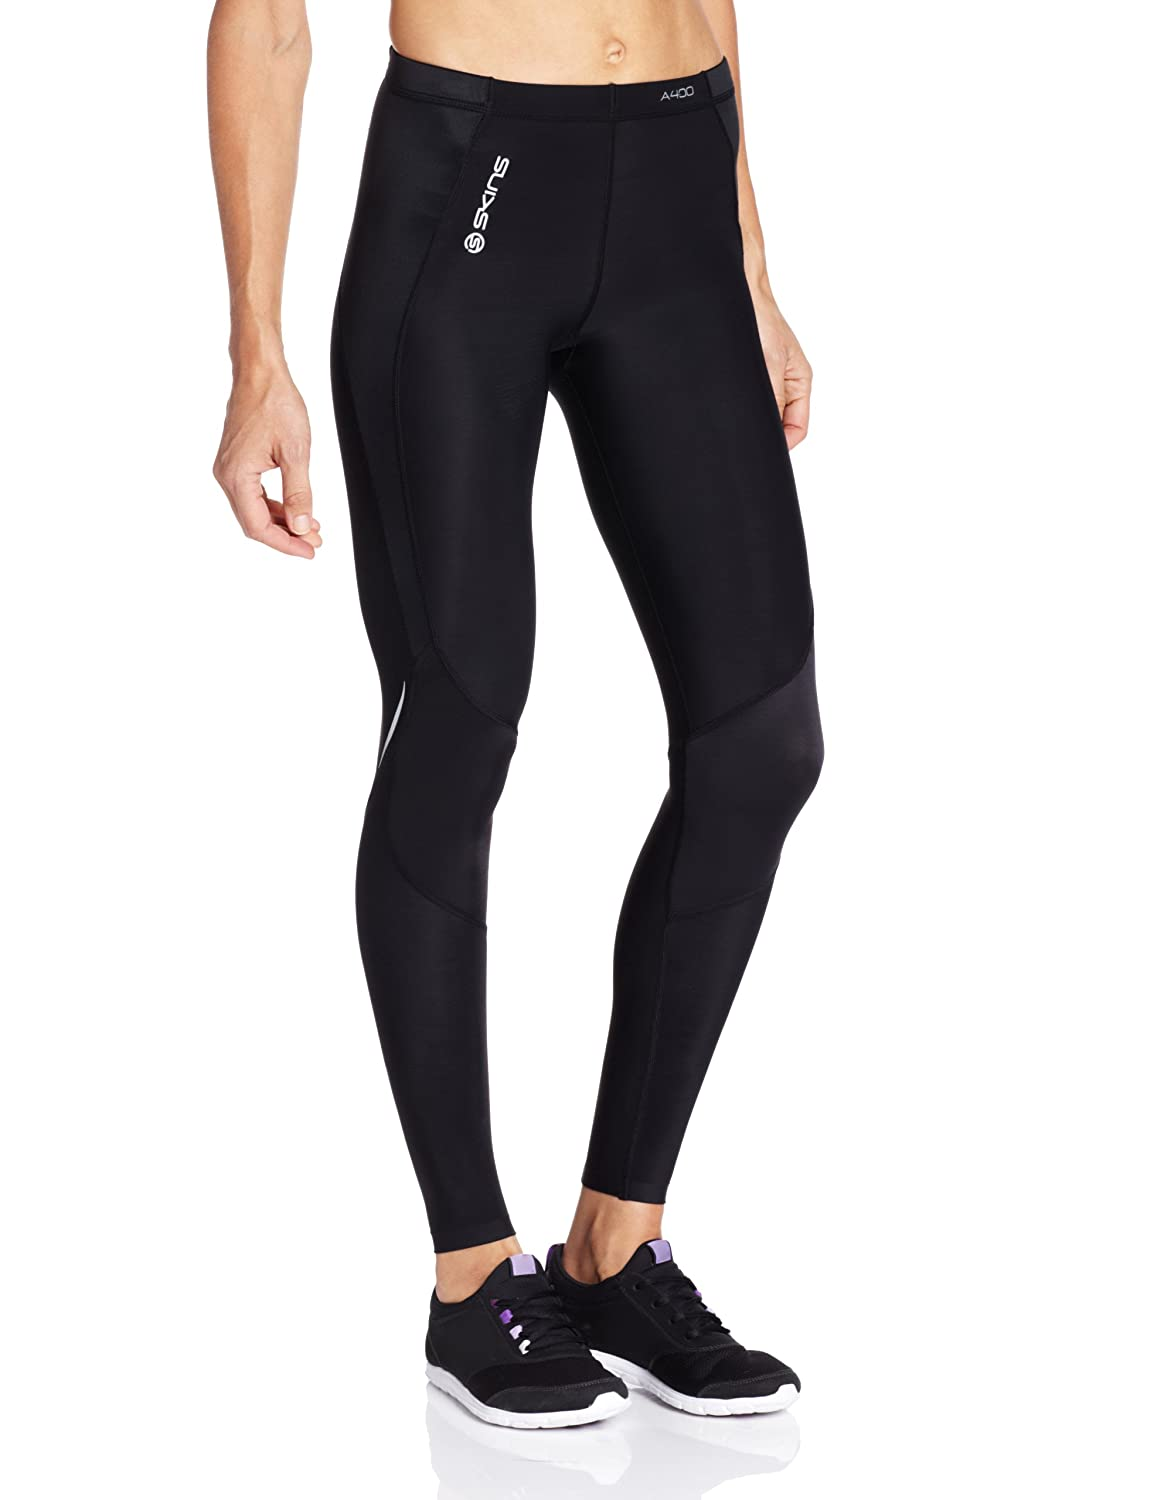 SKINS Women's A400 Long Tights SKIOZ